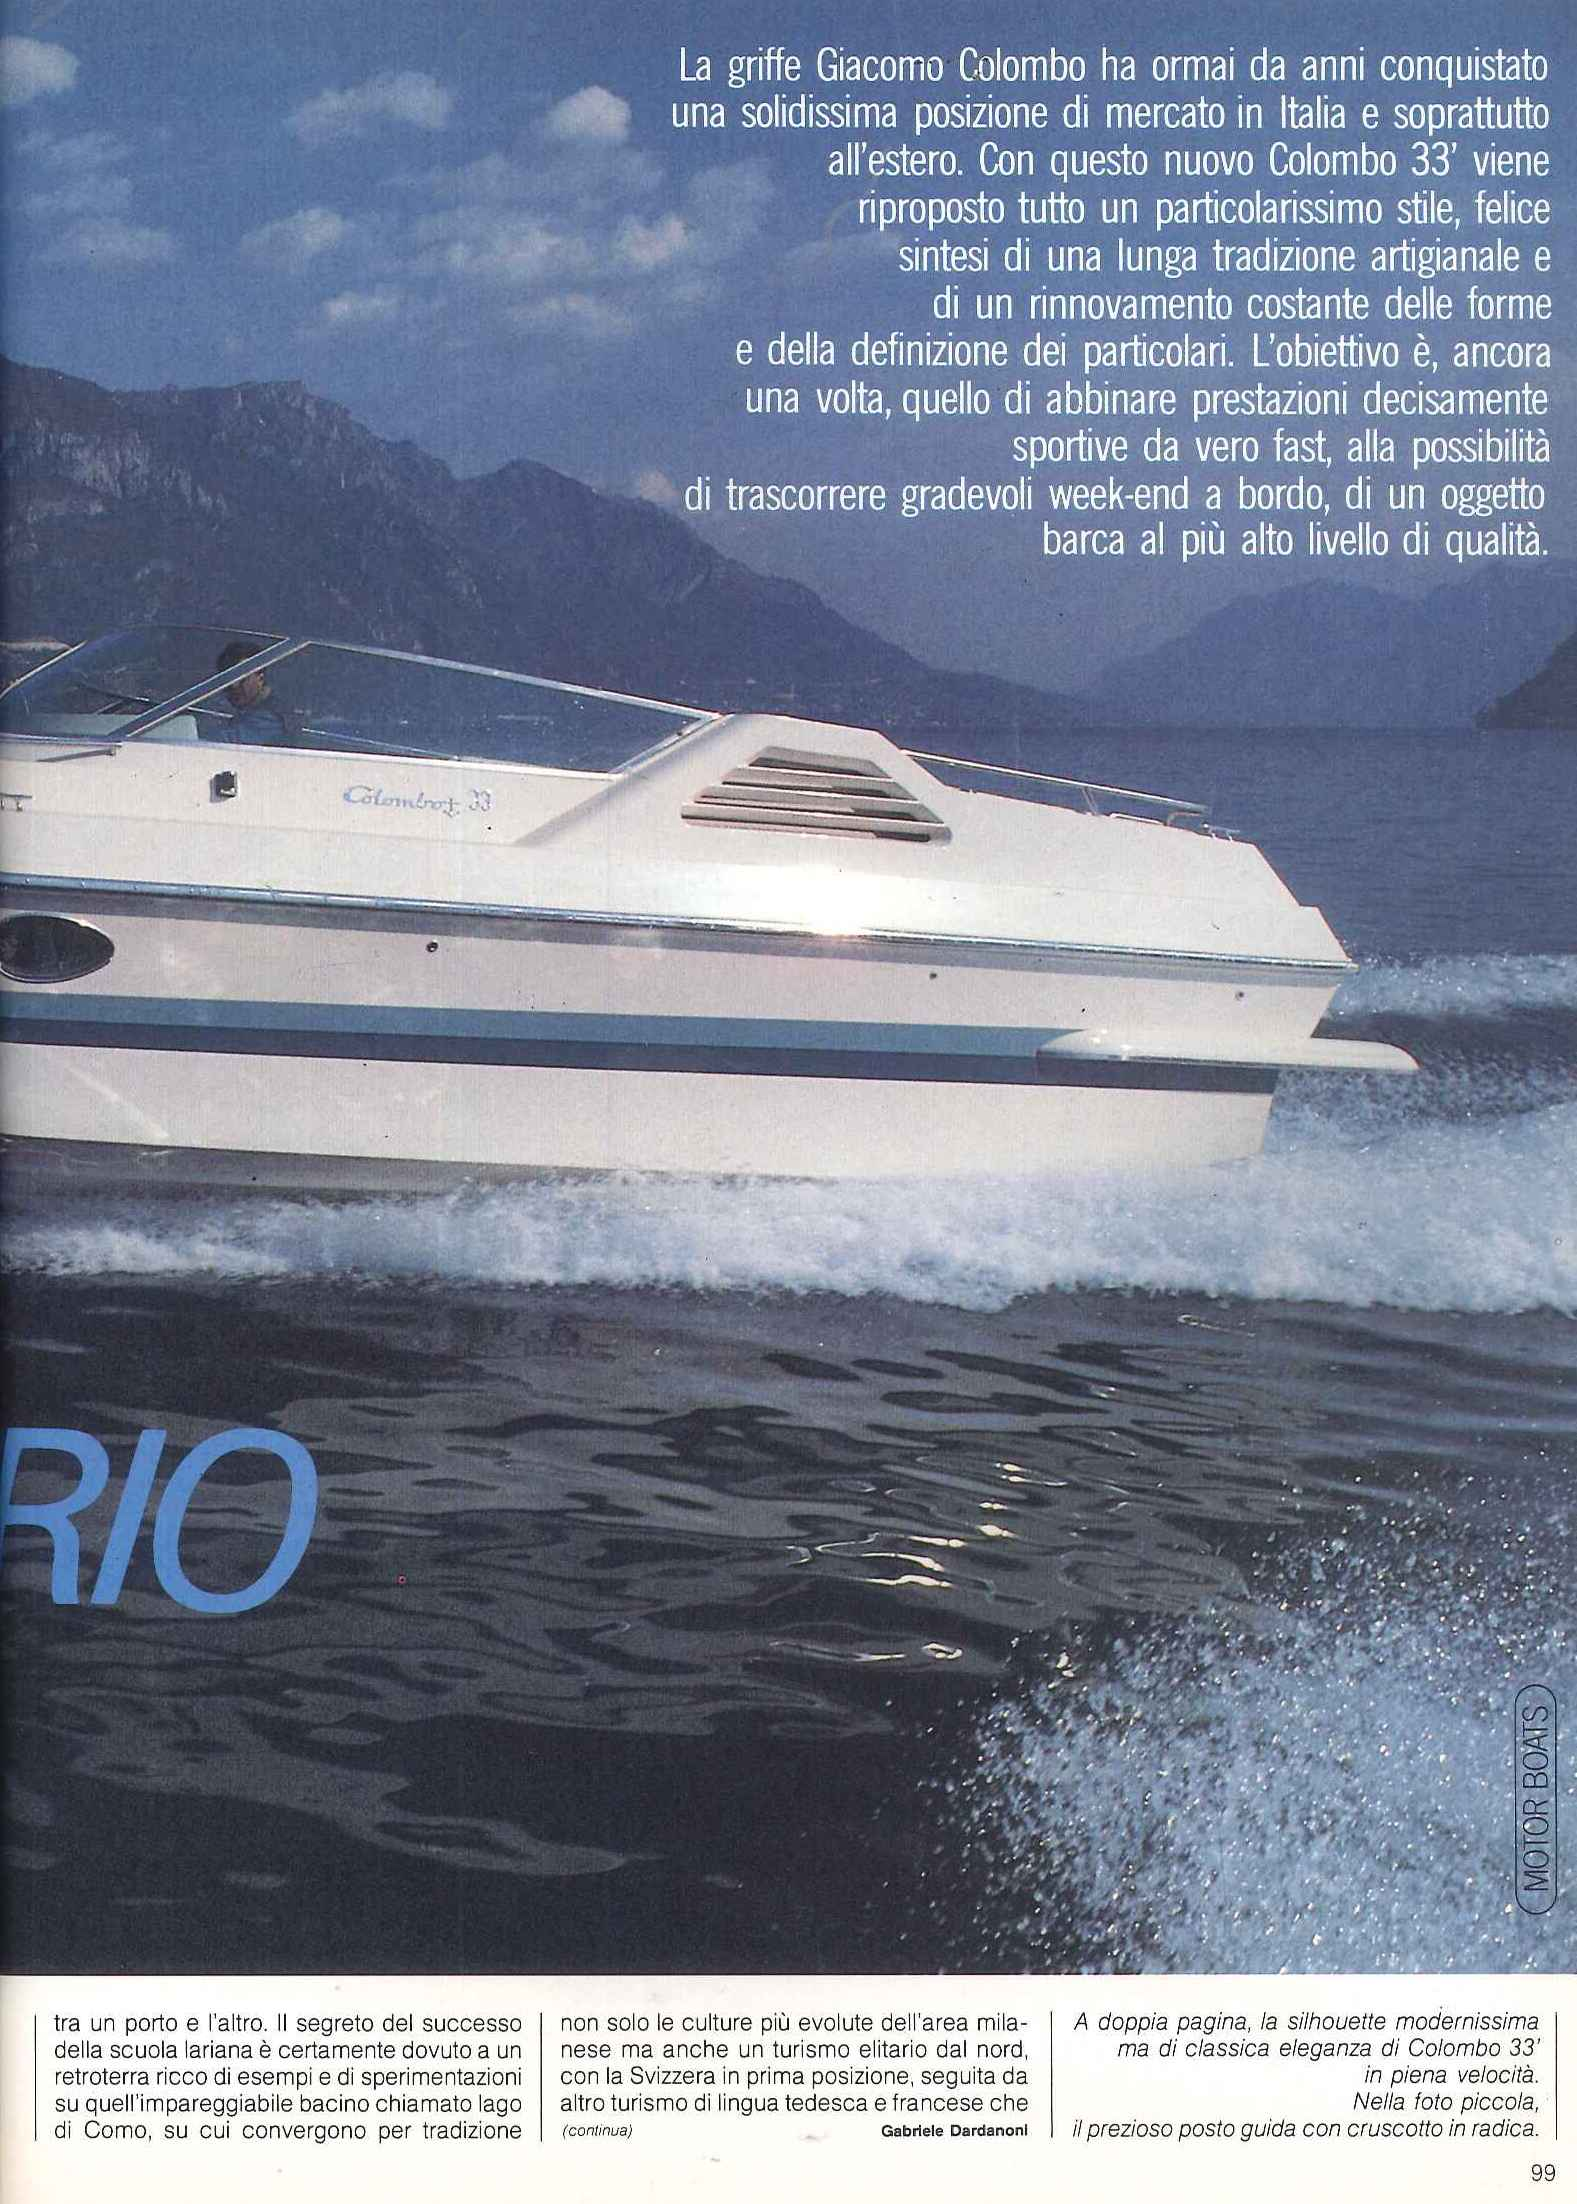 1987 07 PRESS COLOMBO 33 UOMO MARE N°111(02).jpg